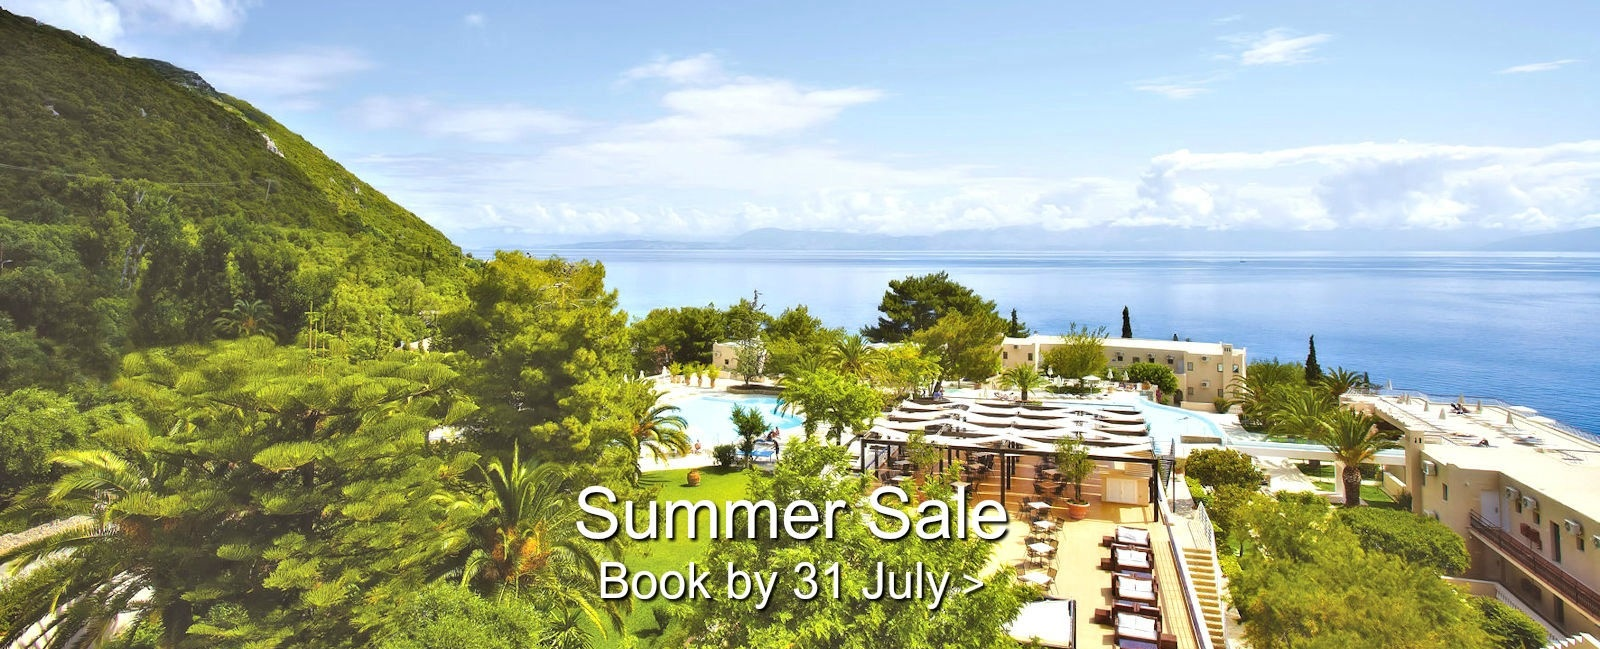 Luxury Holidays Summer Sale